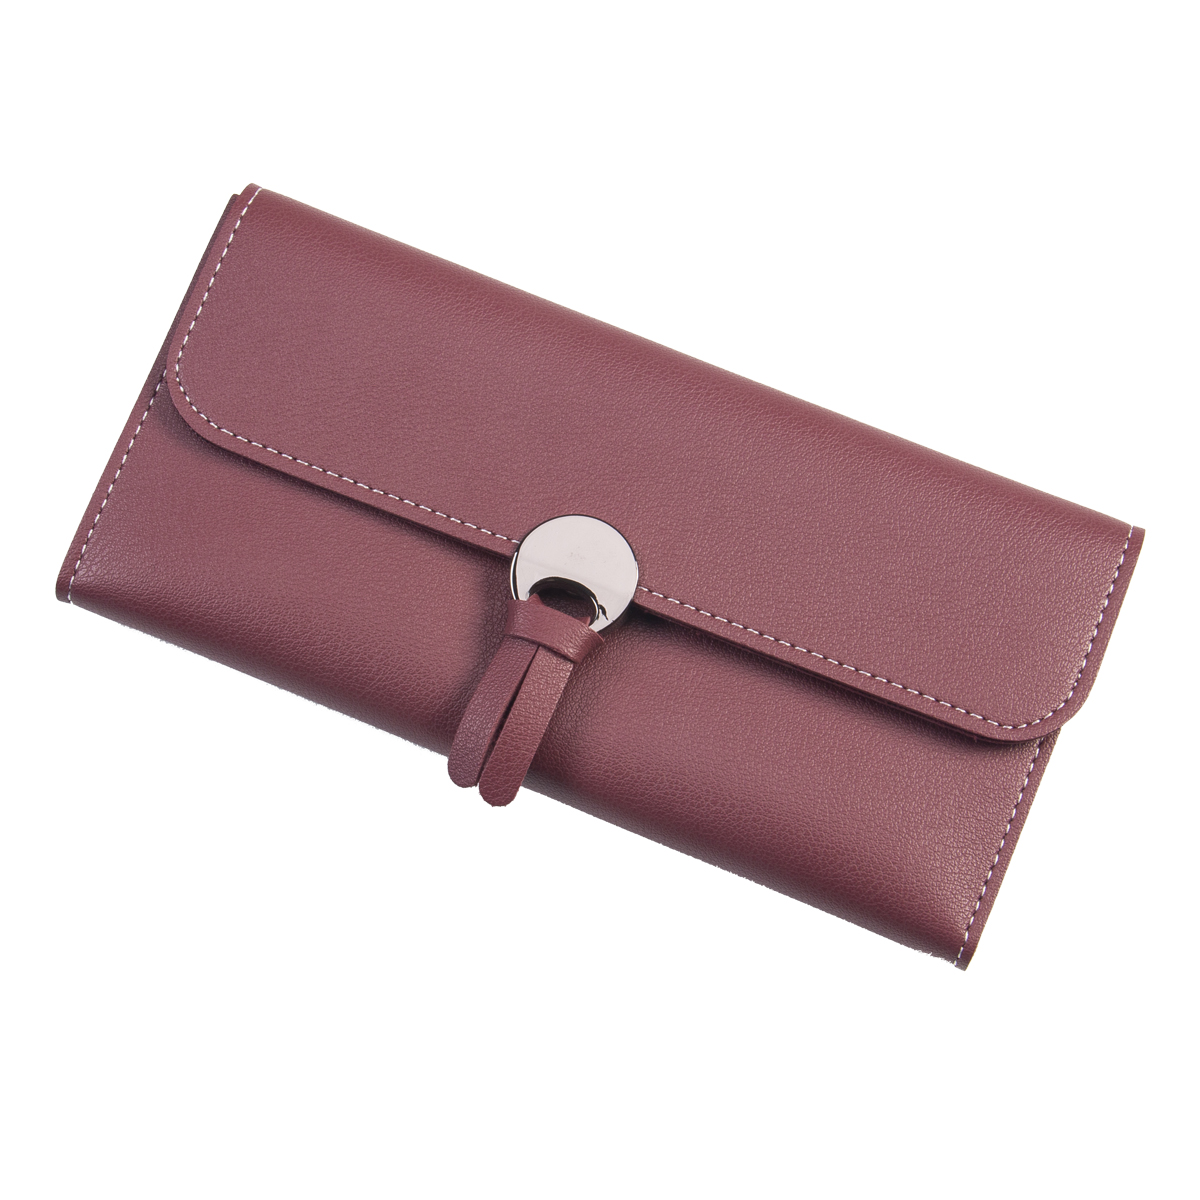 2017 Latest Women pu leather Long Wallet Female Coin Purse Hasp Purse Money Bag Card Holders Womens Wallets And Purses simple organizer wallet women long design thin purse female coin keeper card holder phone pocket money bag bolsas portefeuille